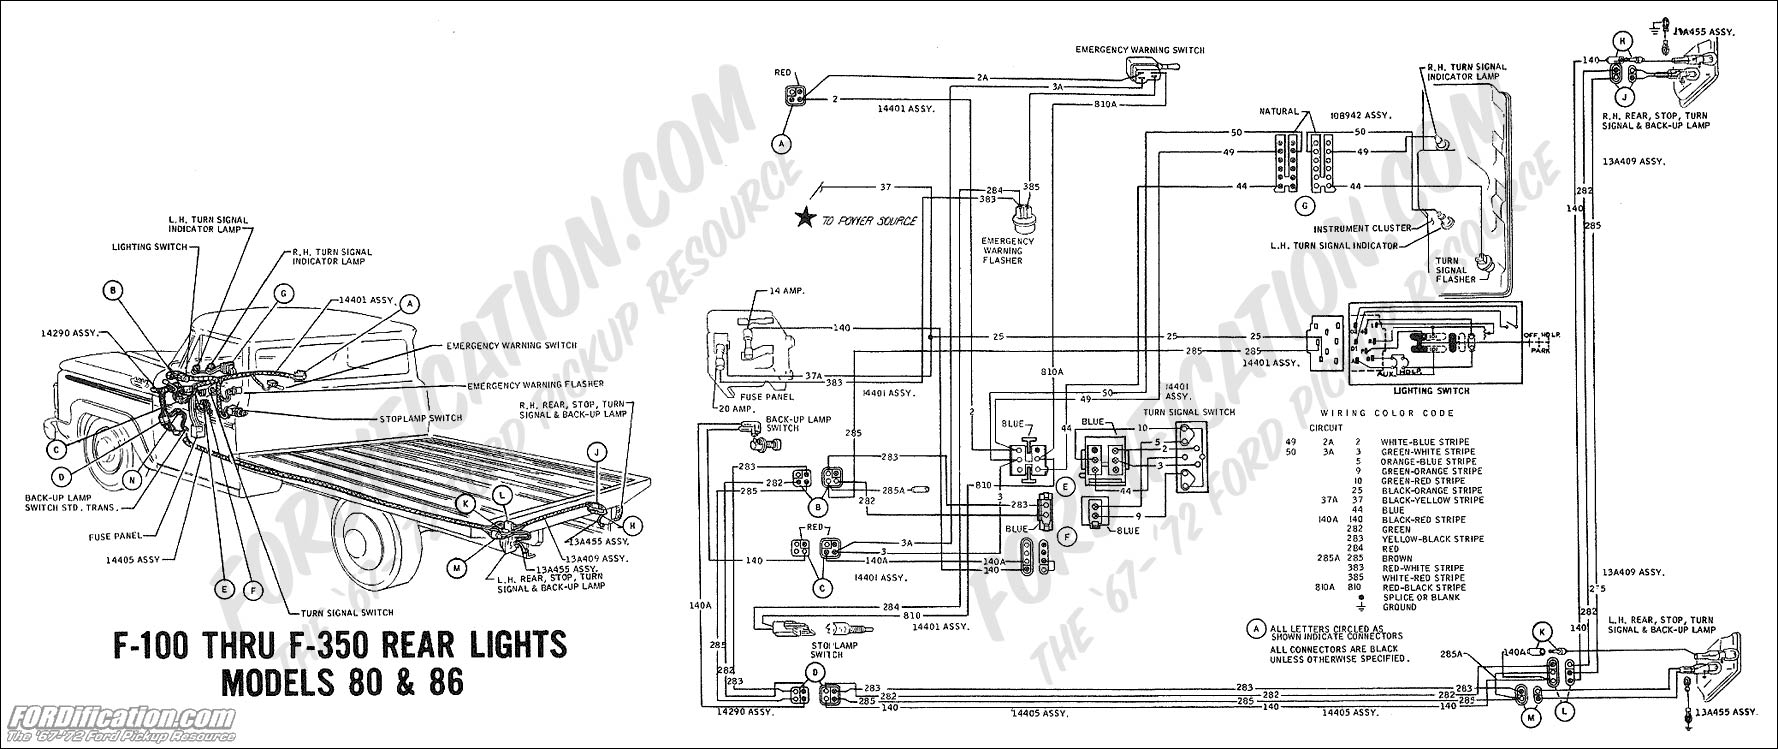 1969 Ford Light Switch Wiring Diagram Archive Of Automotive Dump Trailer Plug Truck Technical Drawings And Schematics Section H Rh Fordification Com